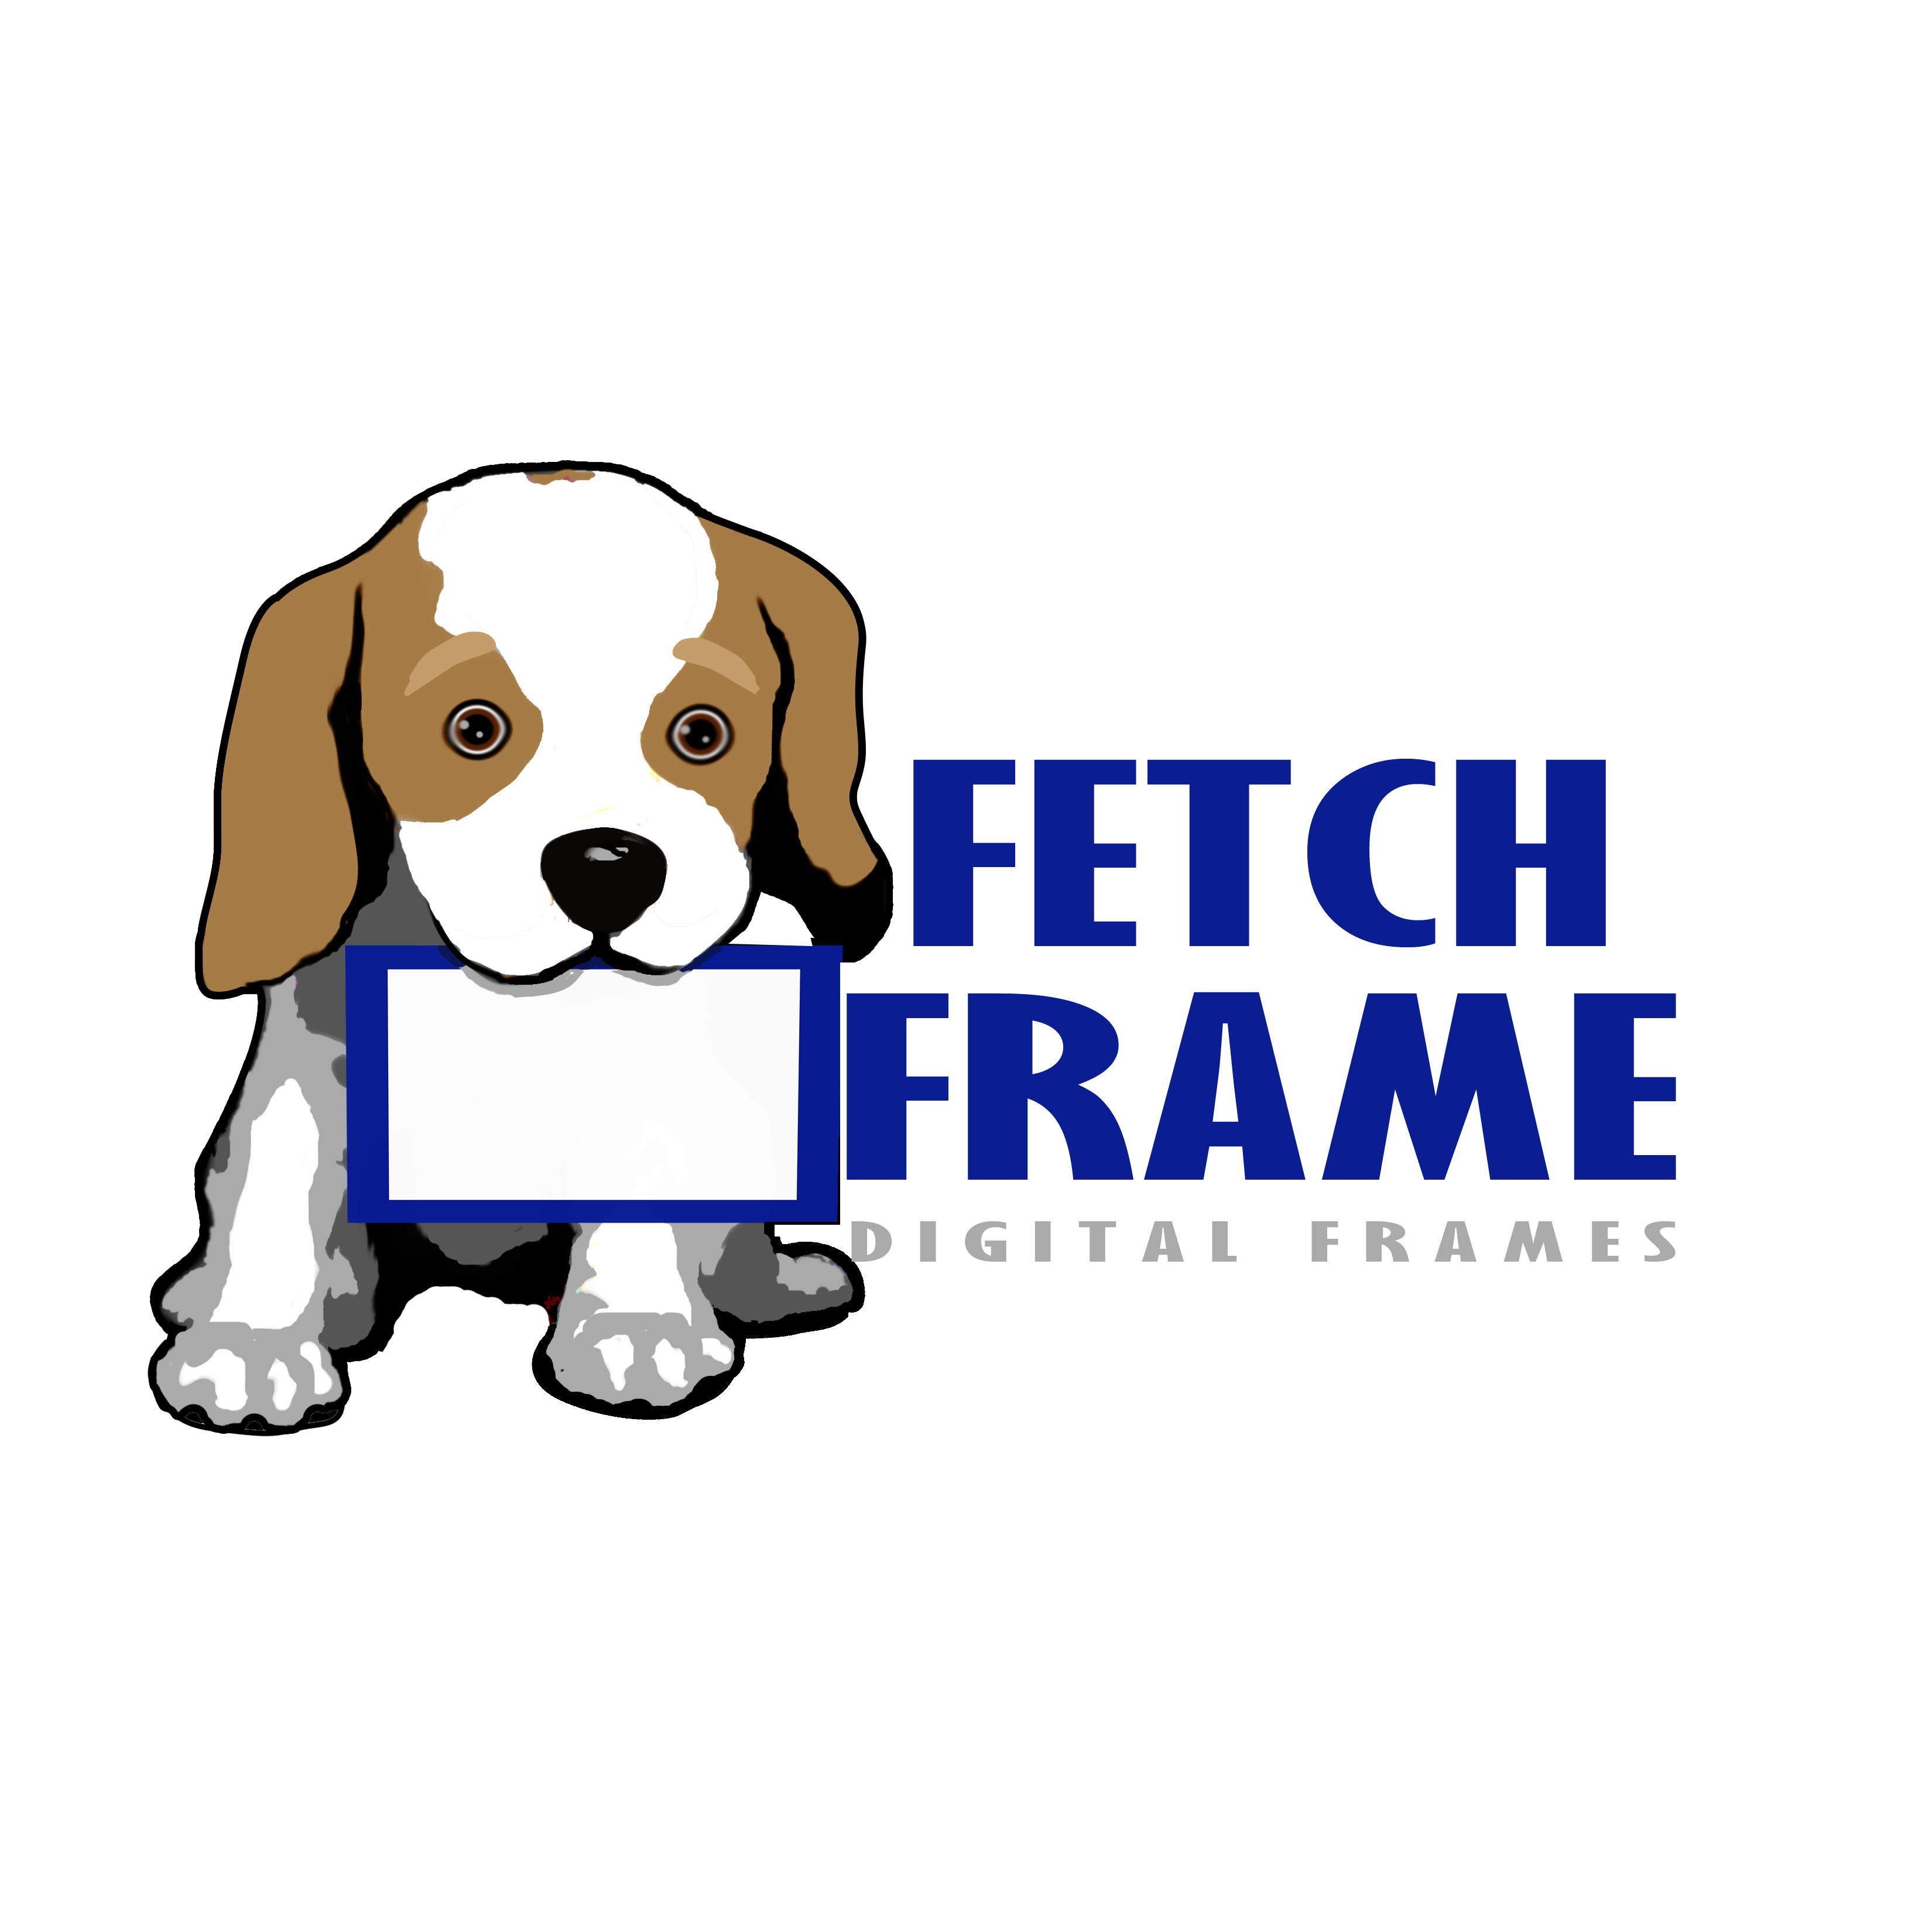 Logo Design by Allan Esclamado - Entry No. 92 in the Logo Design Contest New Logo Design for FetchFrame.